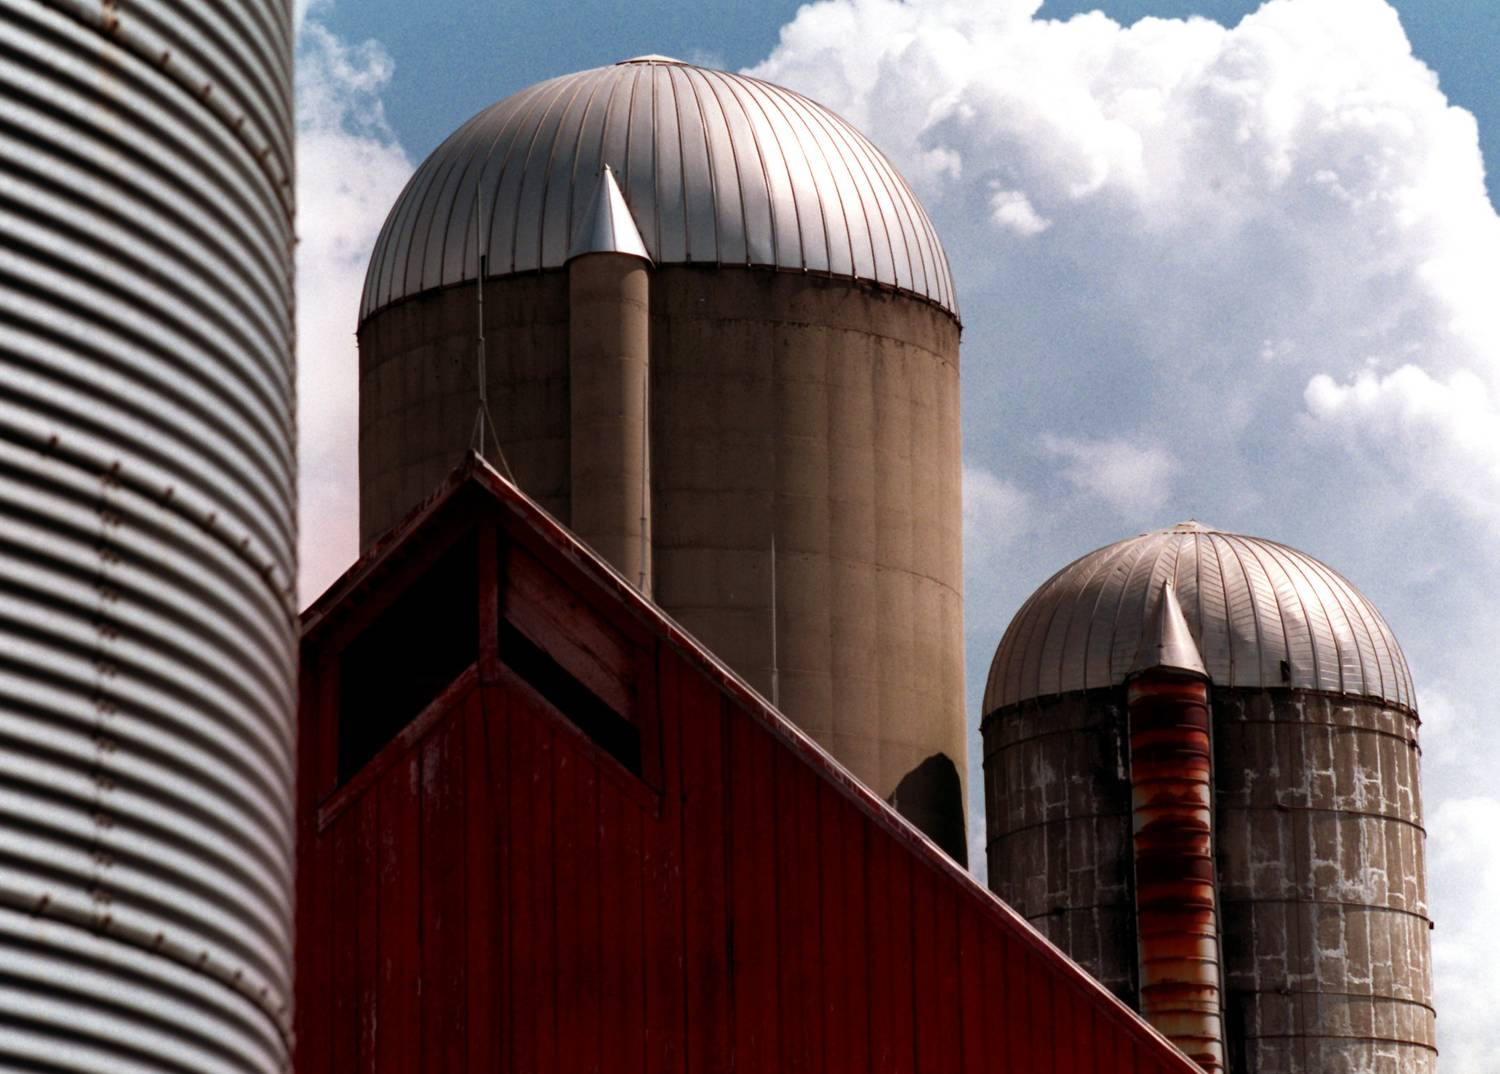 Grain silos against clouds.